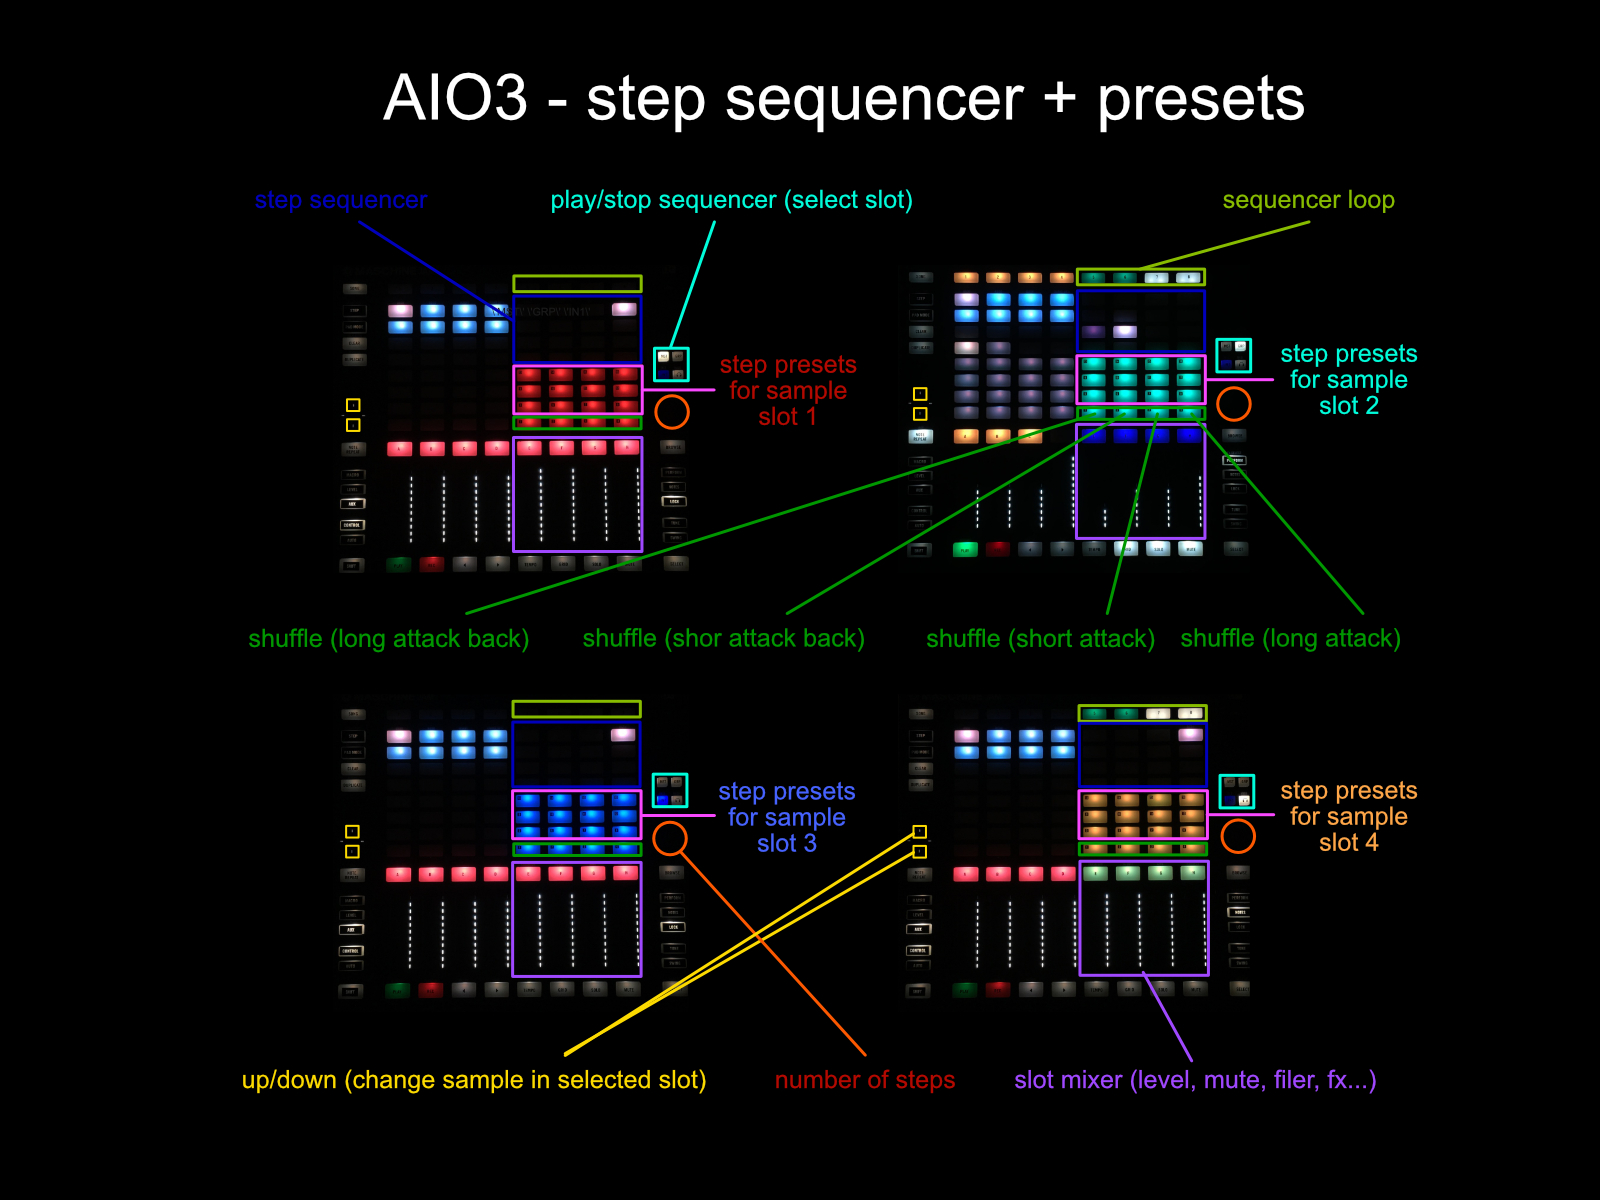 AIO3 - step sequencer and presets